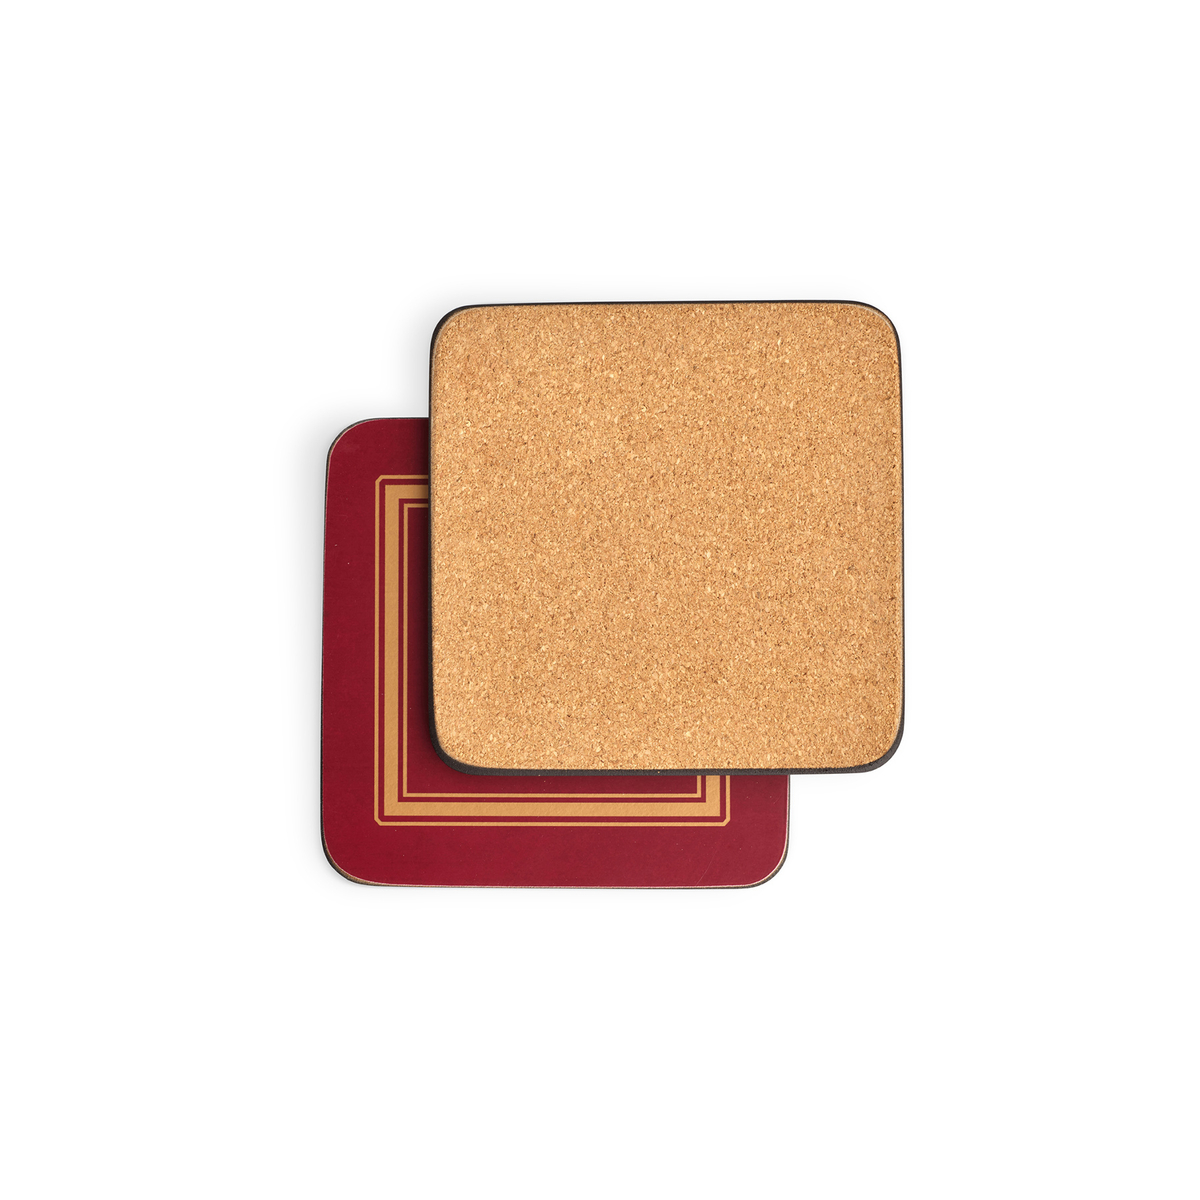 Pimpernel Classic Burgundy Coasters Set of 6 image number 1